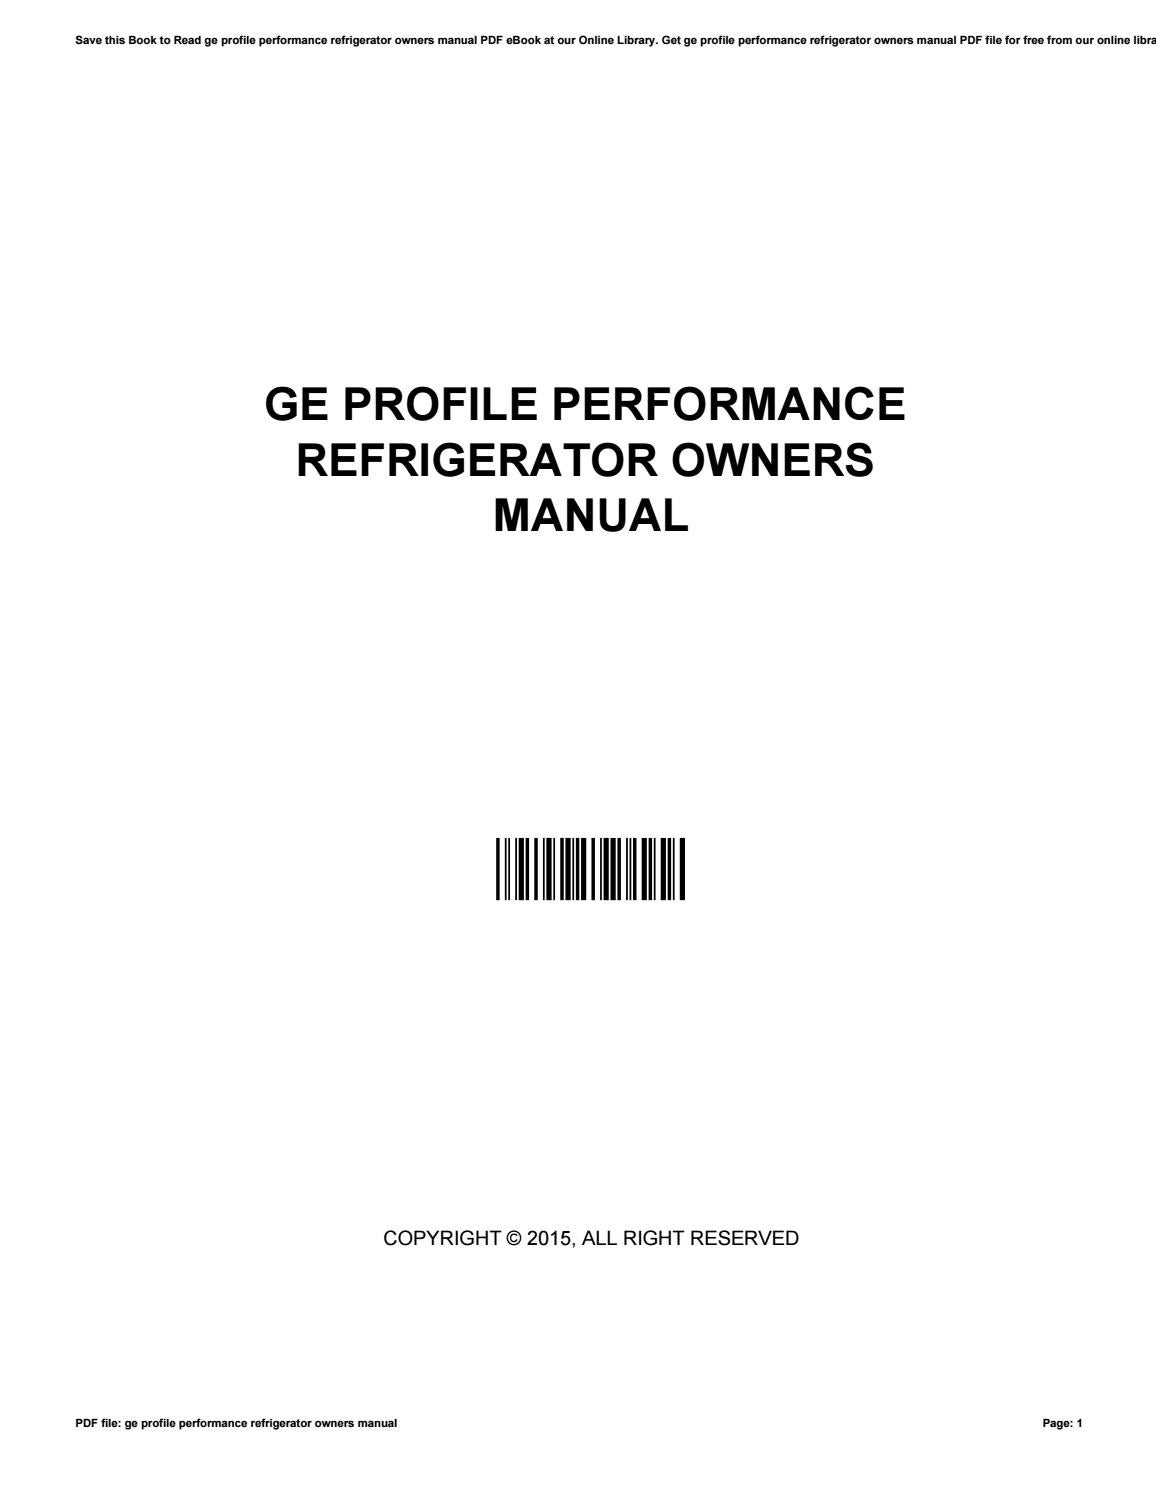 Ge profile performance refrigerator owners manual by EdnaPritchard3687 -  issuu